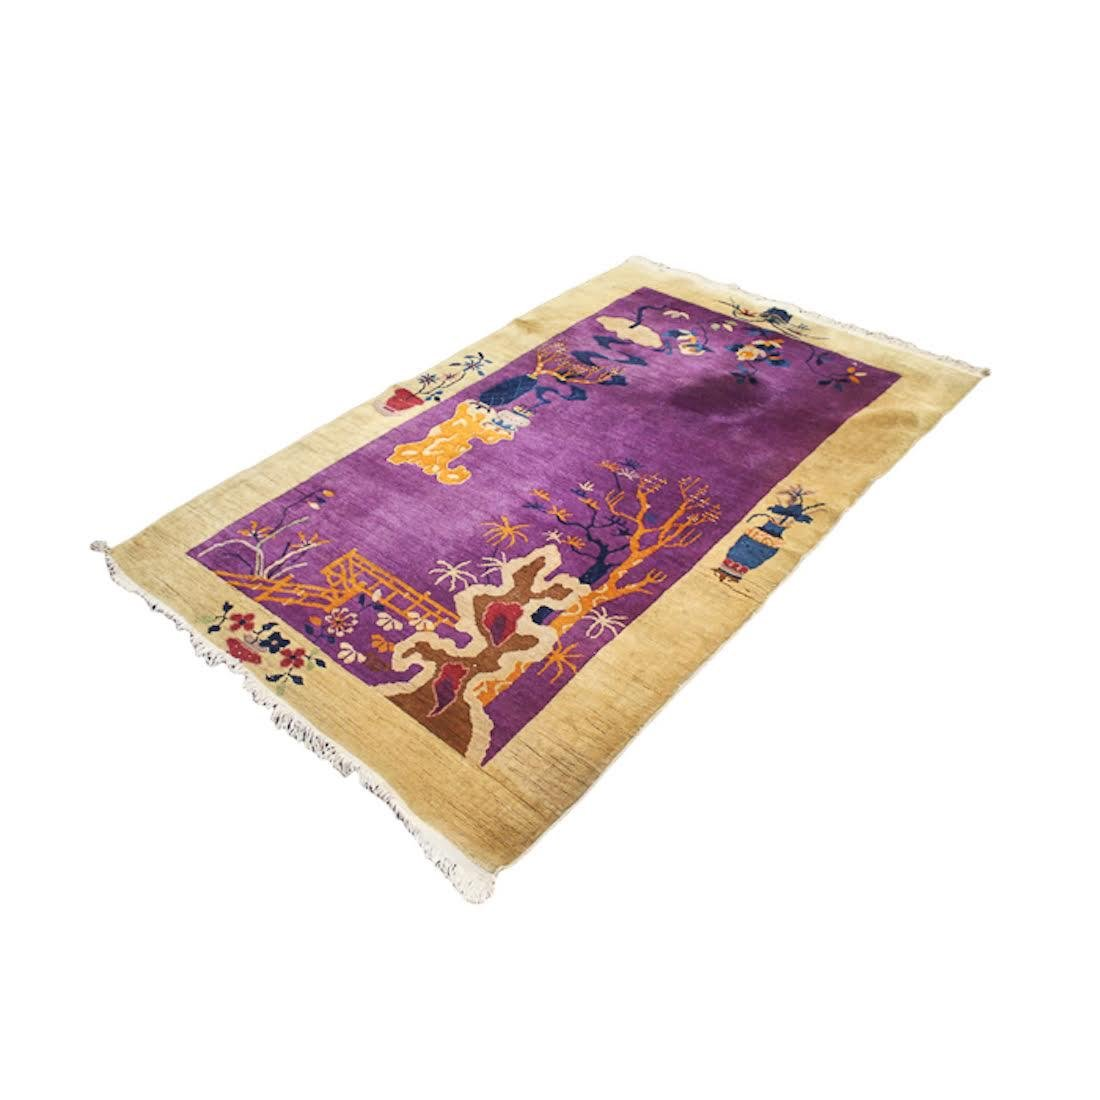 Chinese Art Deco Purple Floral Rug